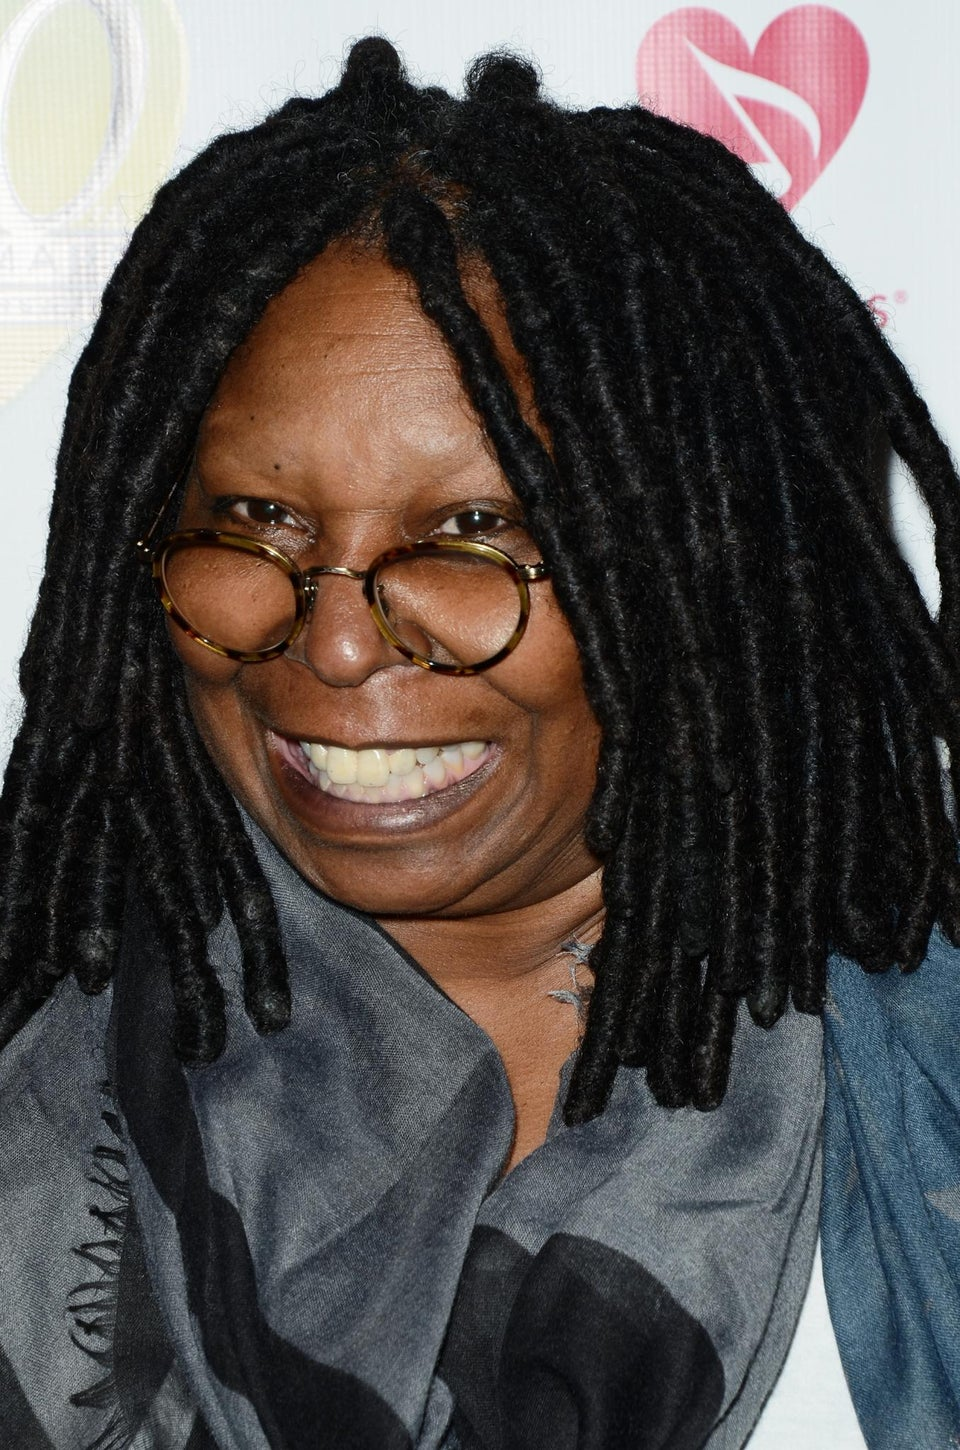 CBS to Air Live Event Marking Civil Rights Act Anniversary With Whoopi Goldberg